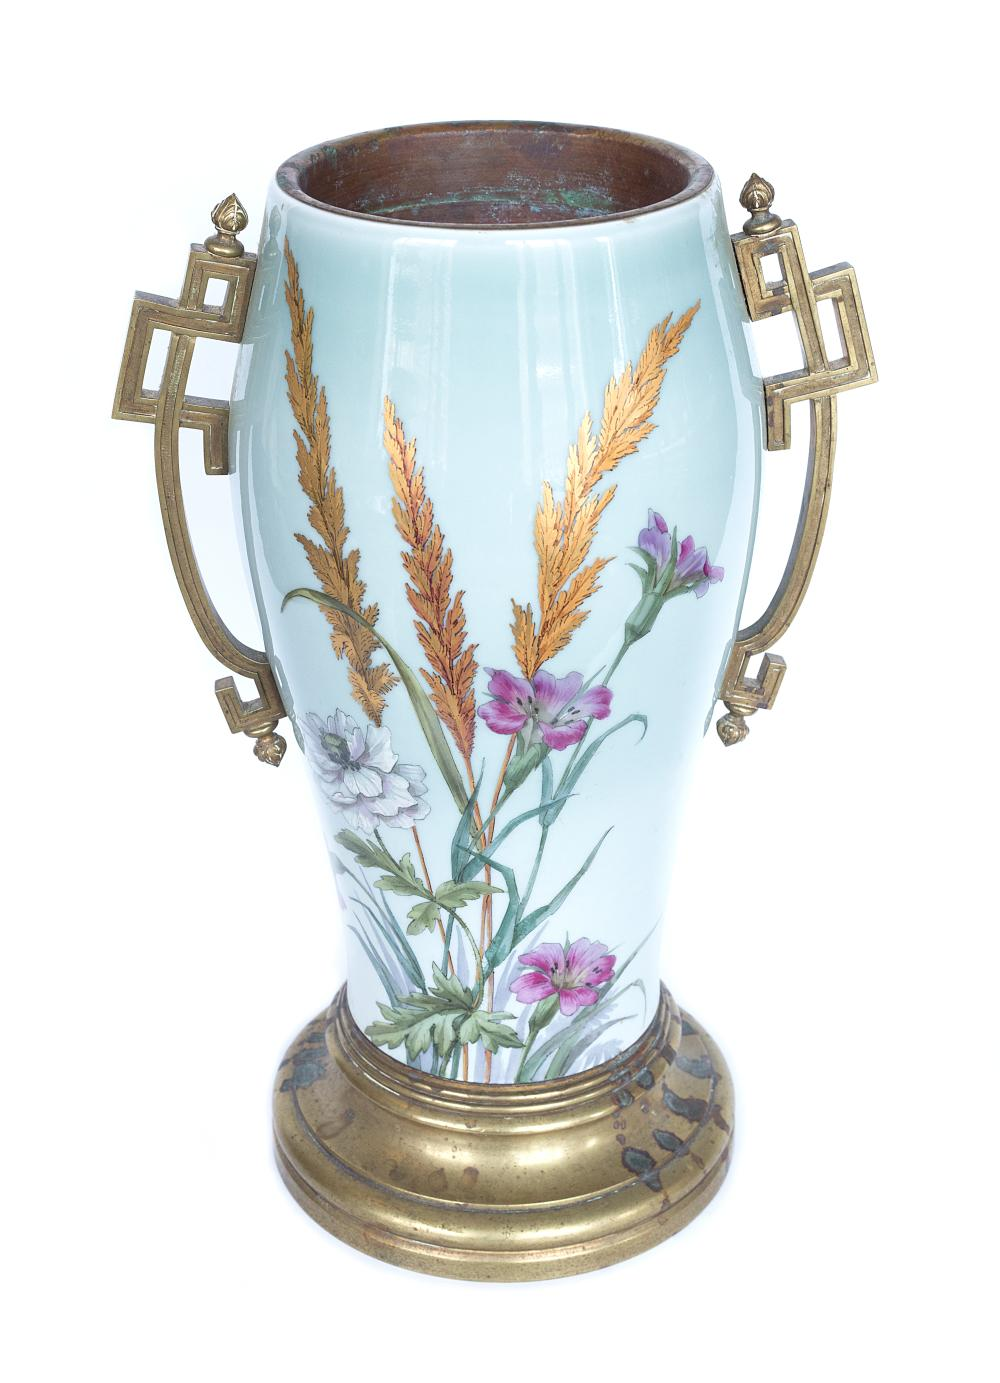 Imperial Porcelain Factory decorative vase with images of stylized flowers with bronze beams and base